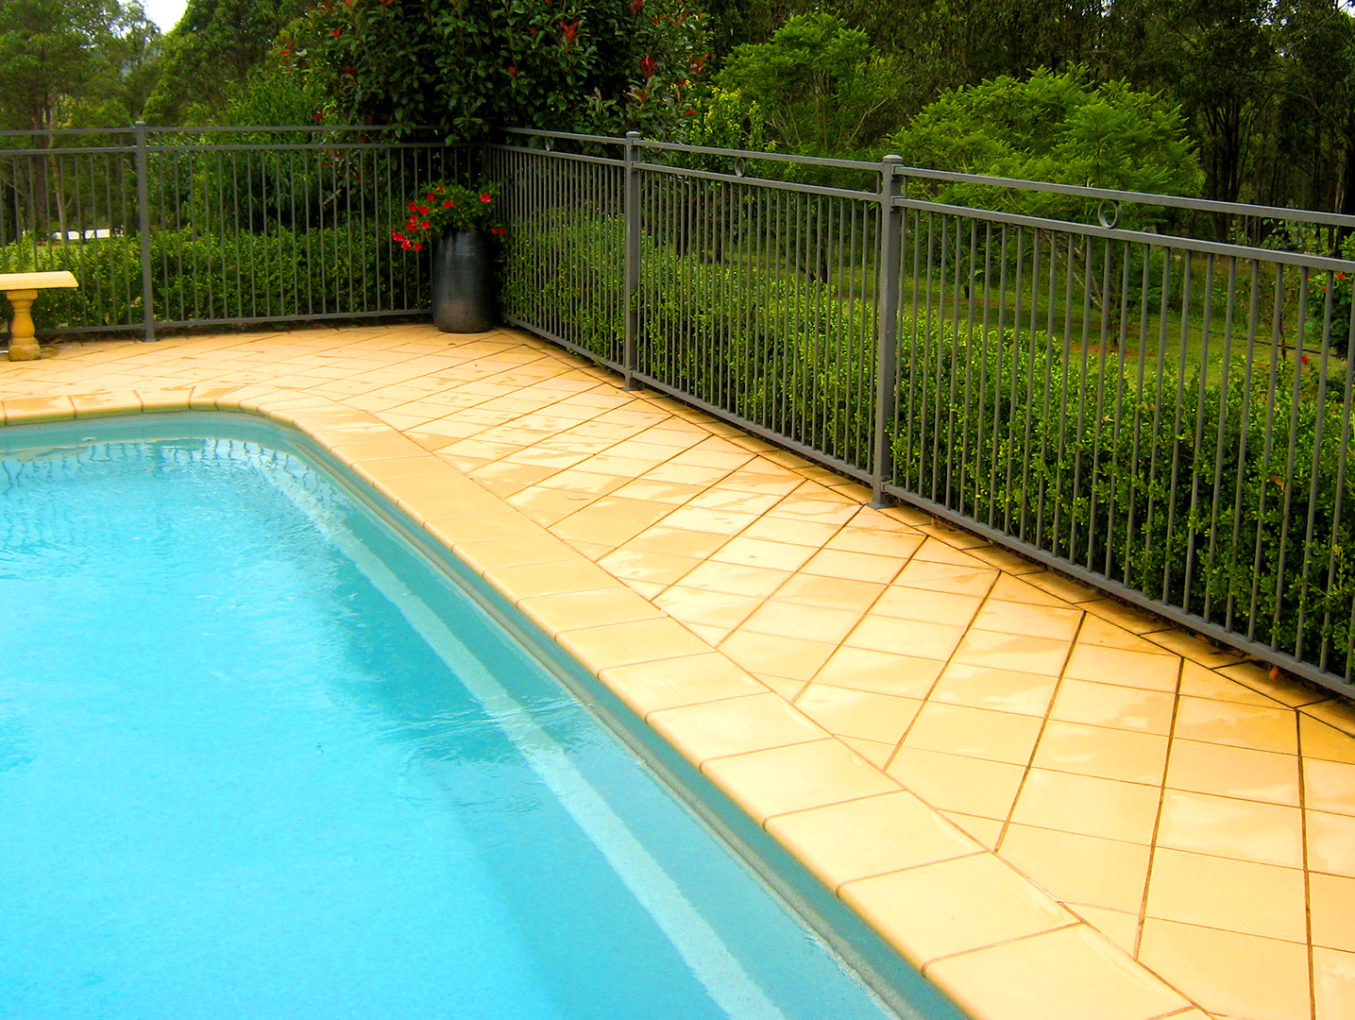 Pool Fencing Supply and Install Brisbane